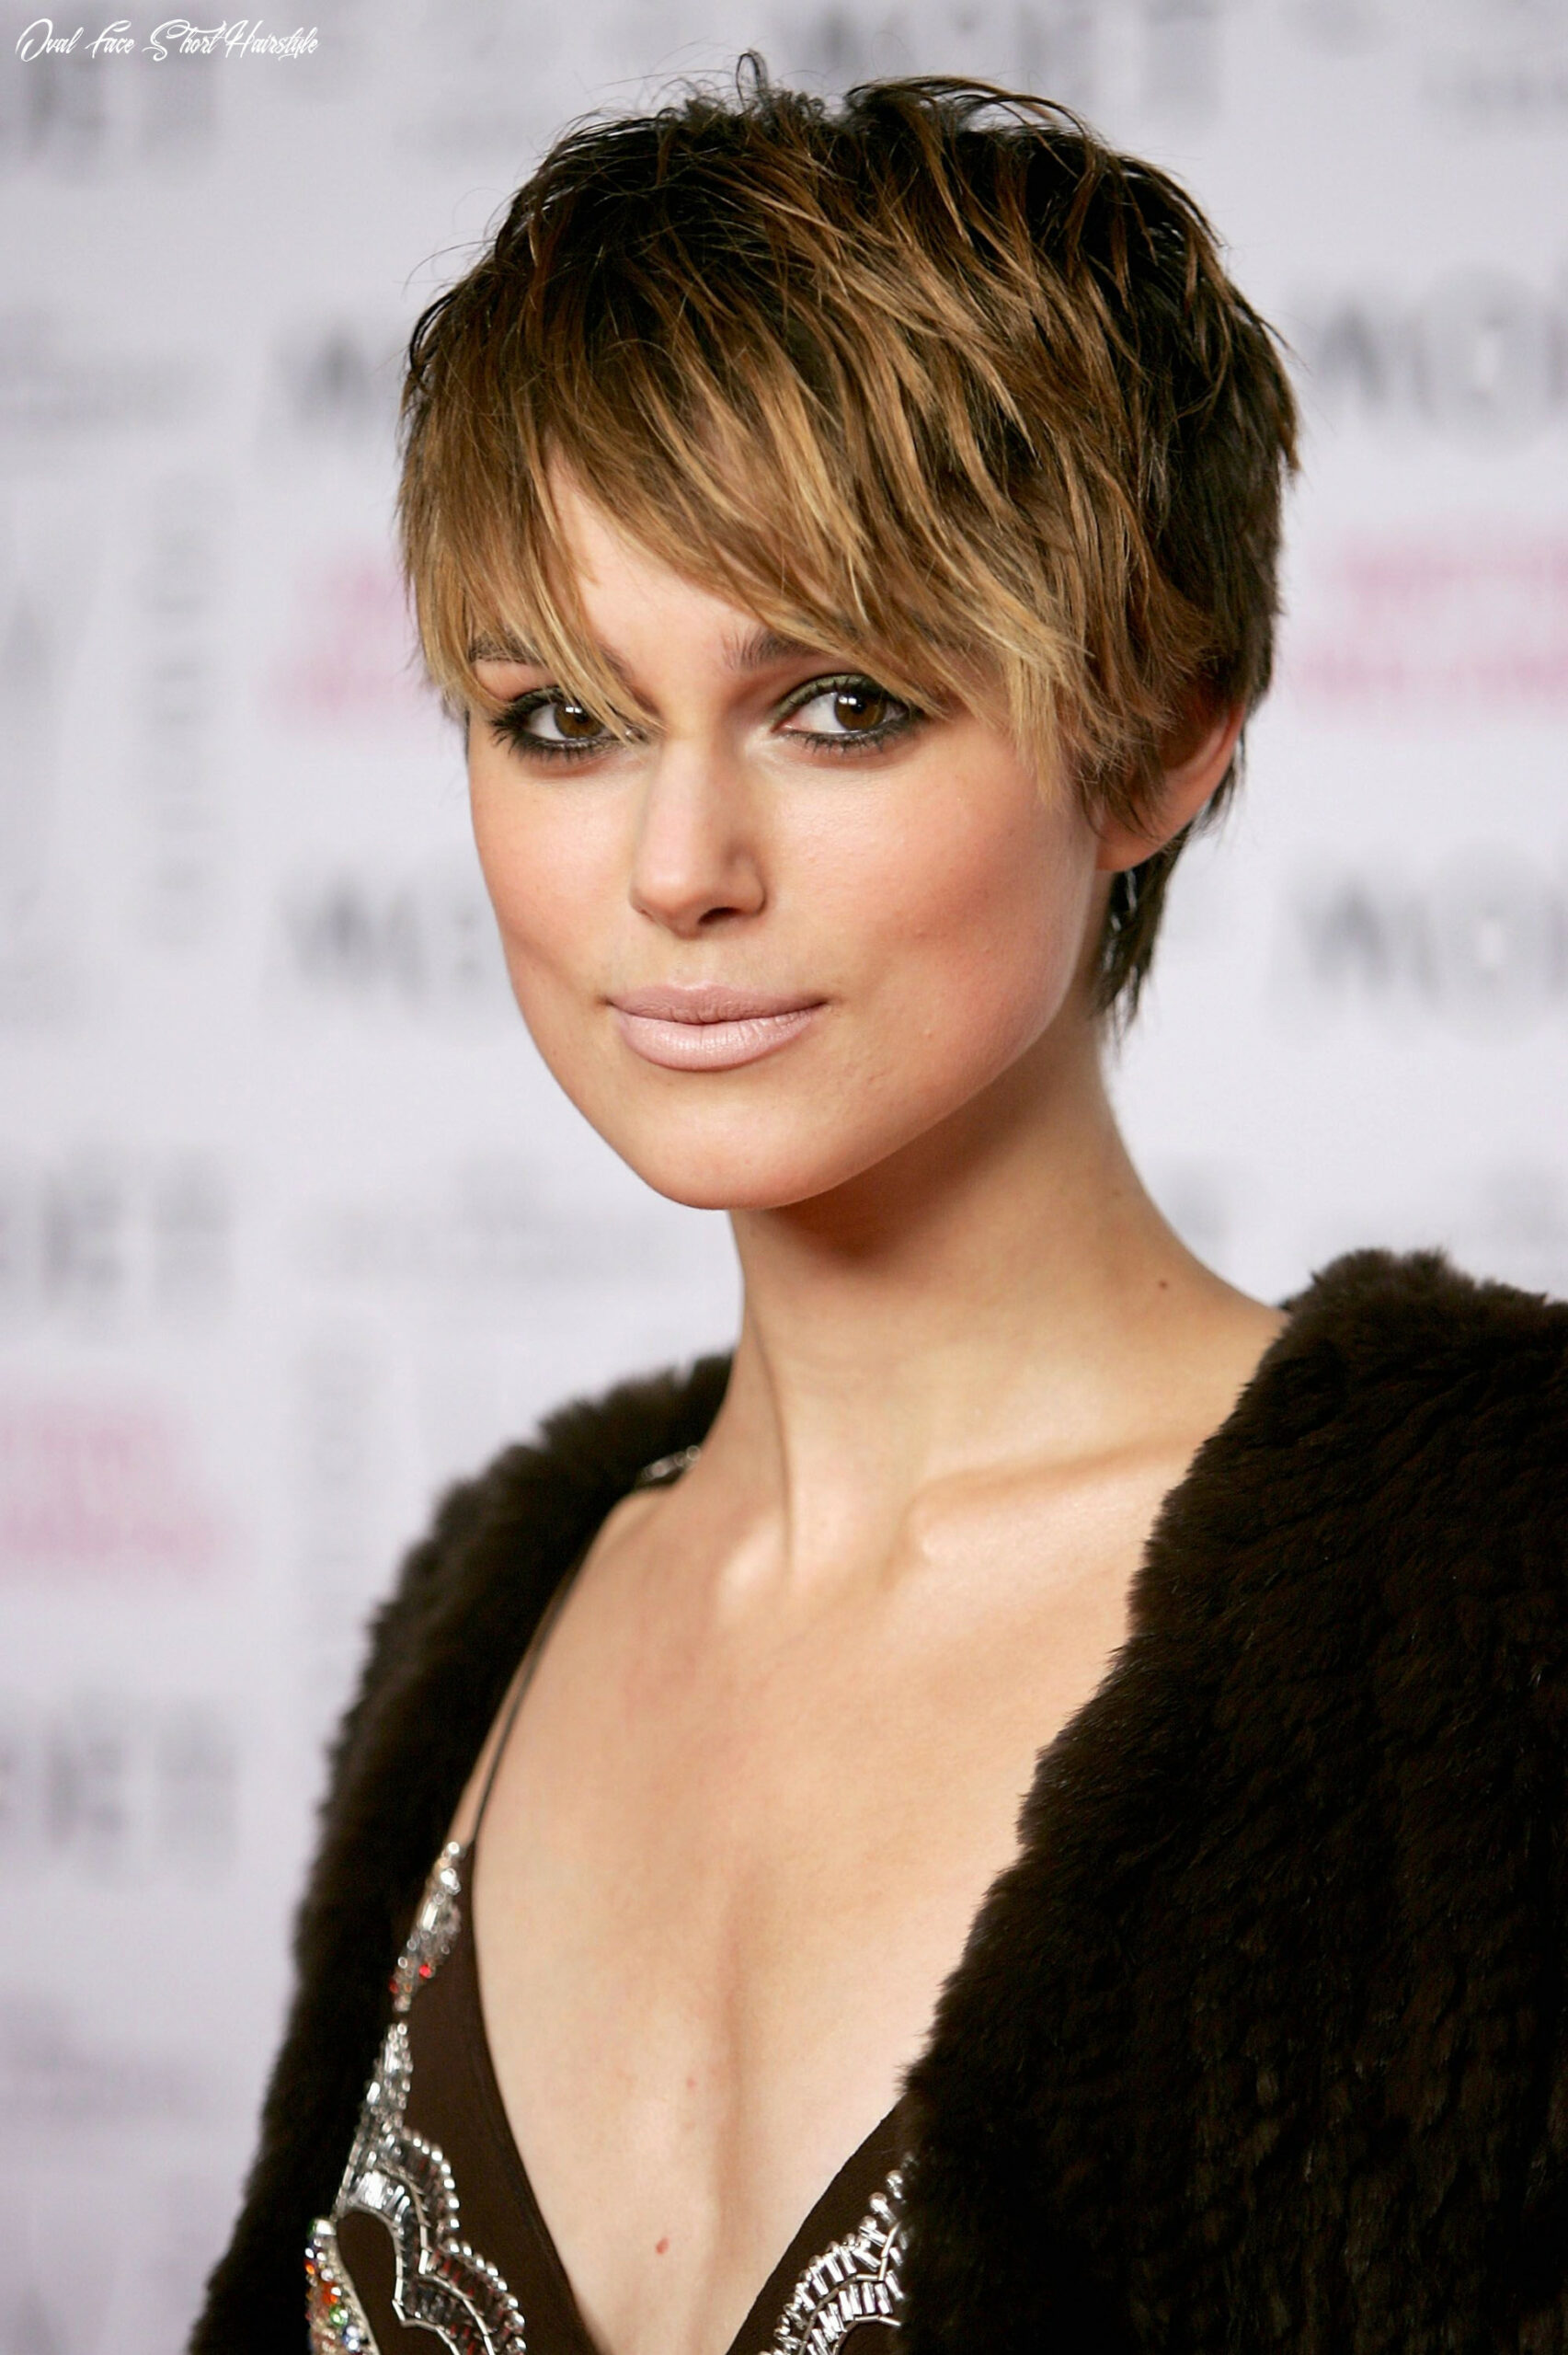 Hairstyles for fine hair and oval face awesome hairstyles short